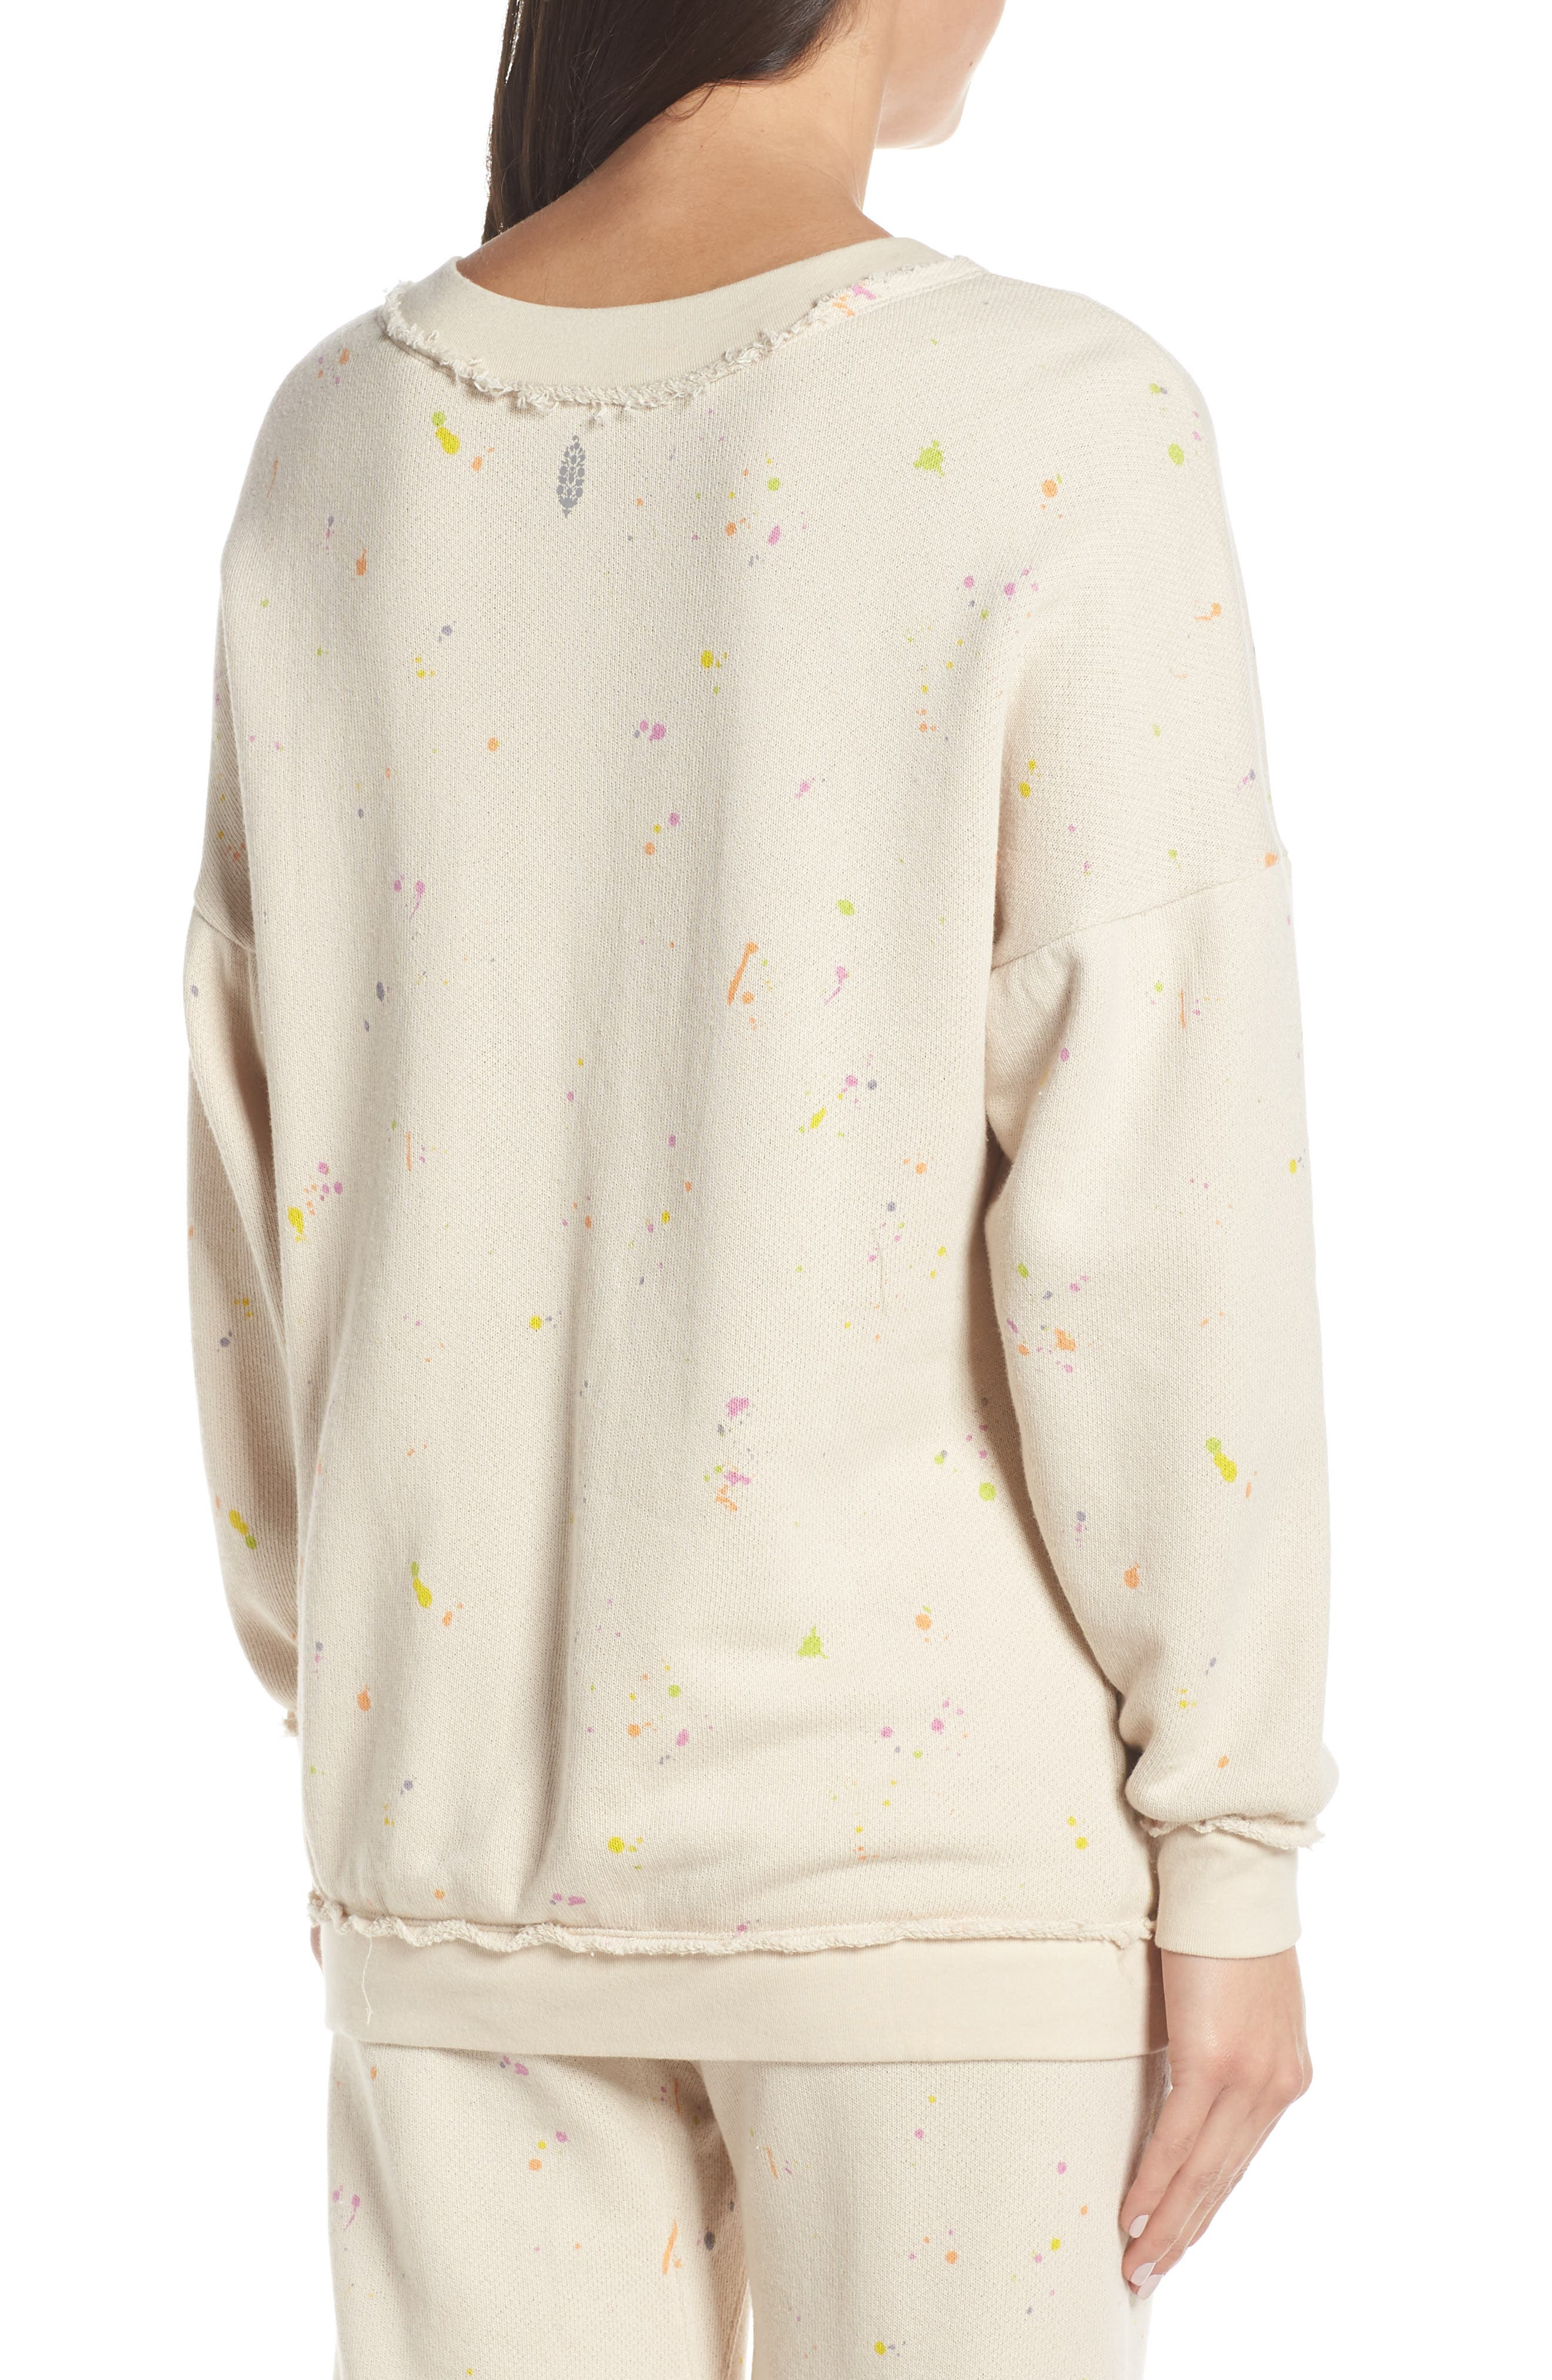 FREE PEOPLE MOVEMENT, Make It Count Printed Sweatshirt, Alternate thumbnail 2, color, IVORY